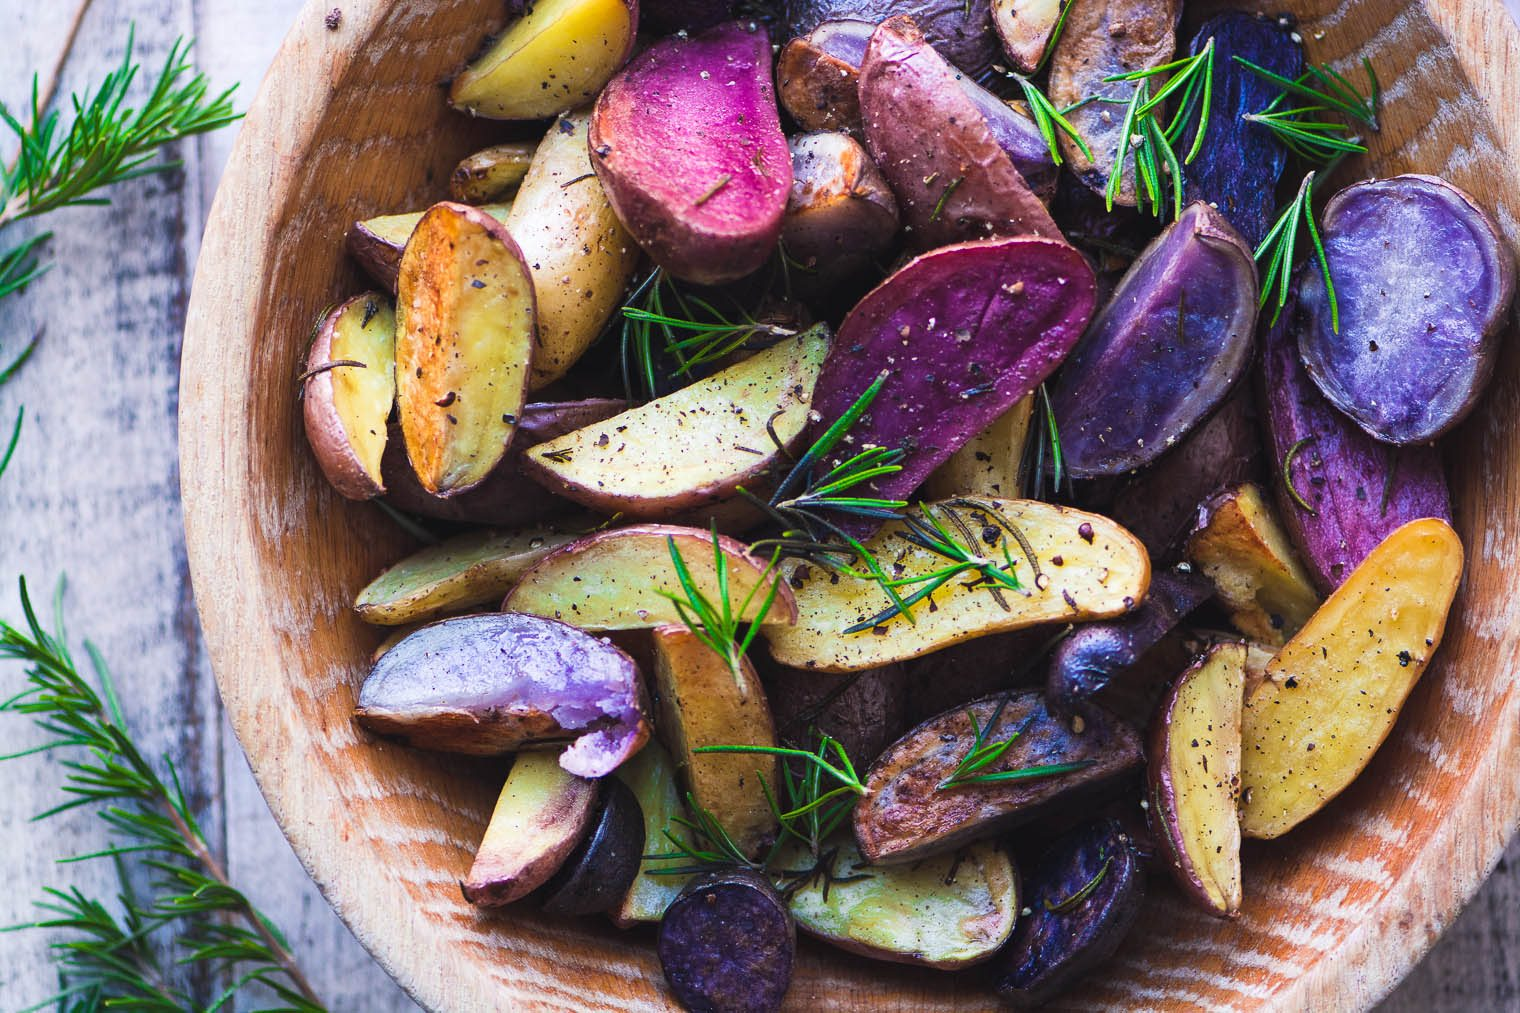 Rosemary Roasted Rainbow Potatoes photograph